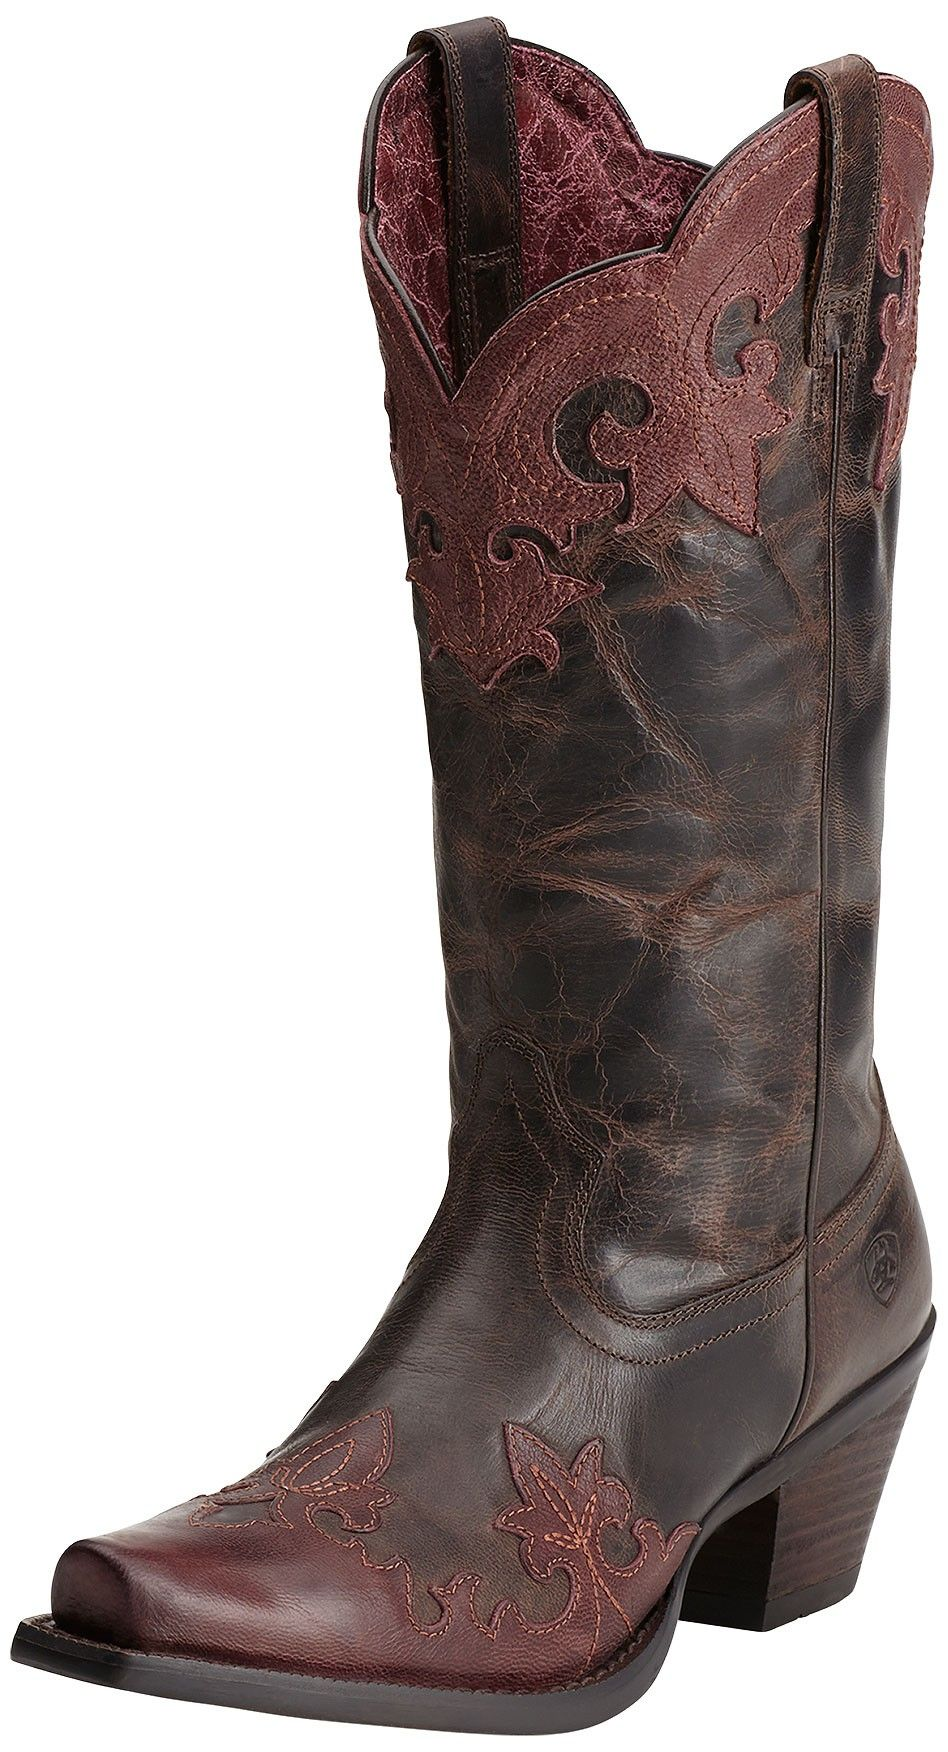 Delphine Wingtip Women's Brown and Red Boots by Ariat Boots 10014132 Beautifully crafted for durability and style, Delphine brown and red boots feature a